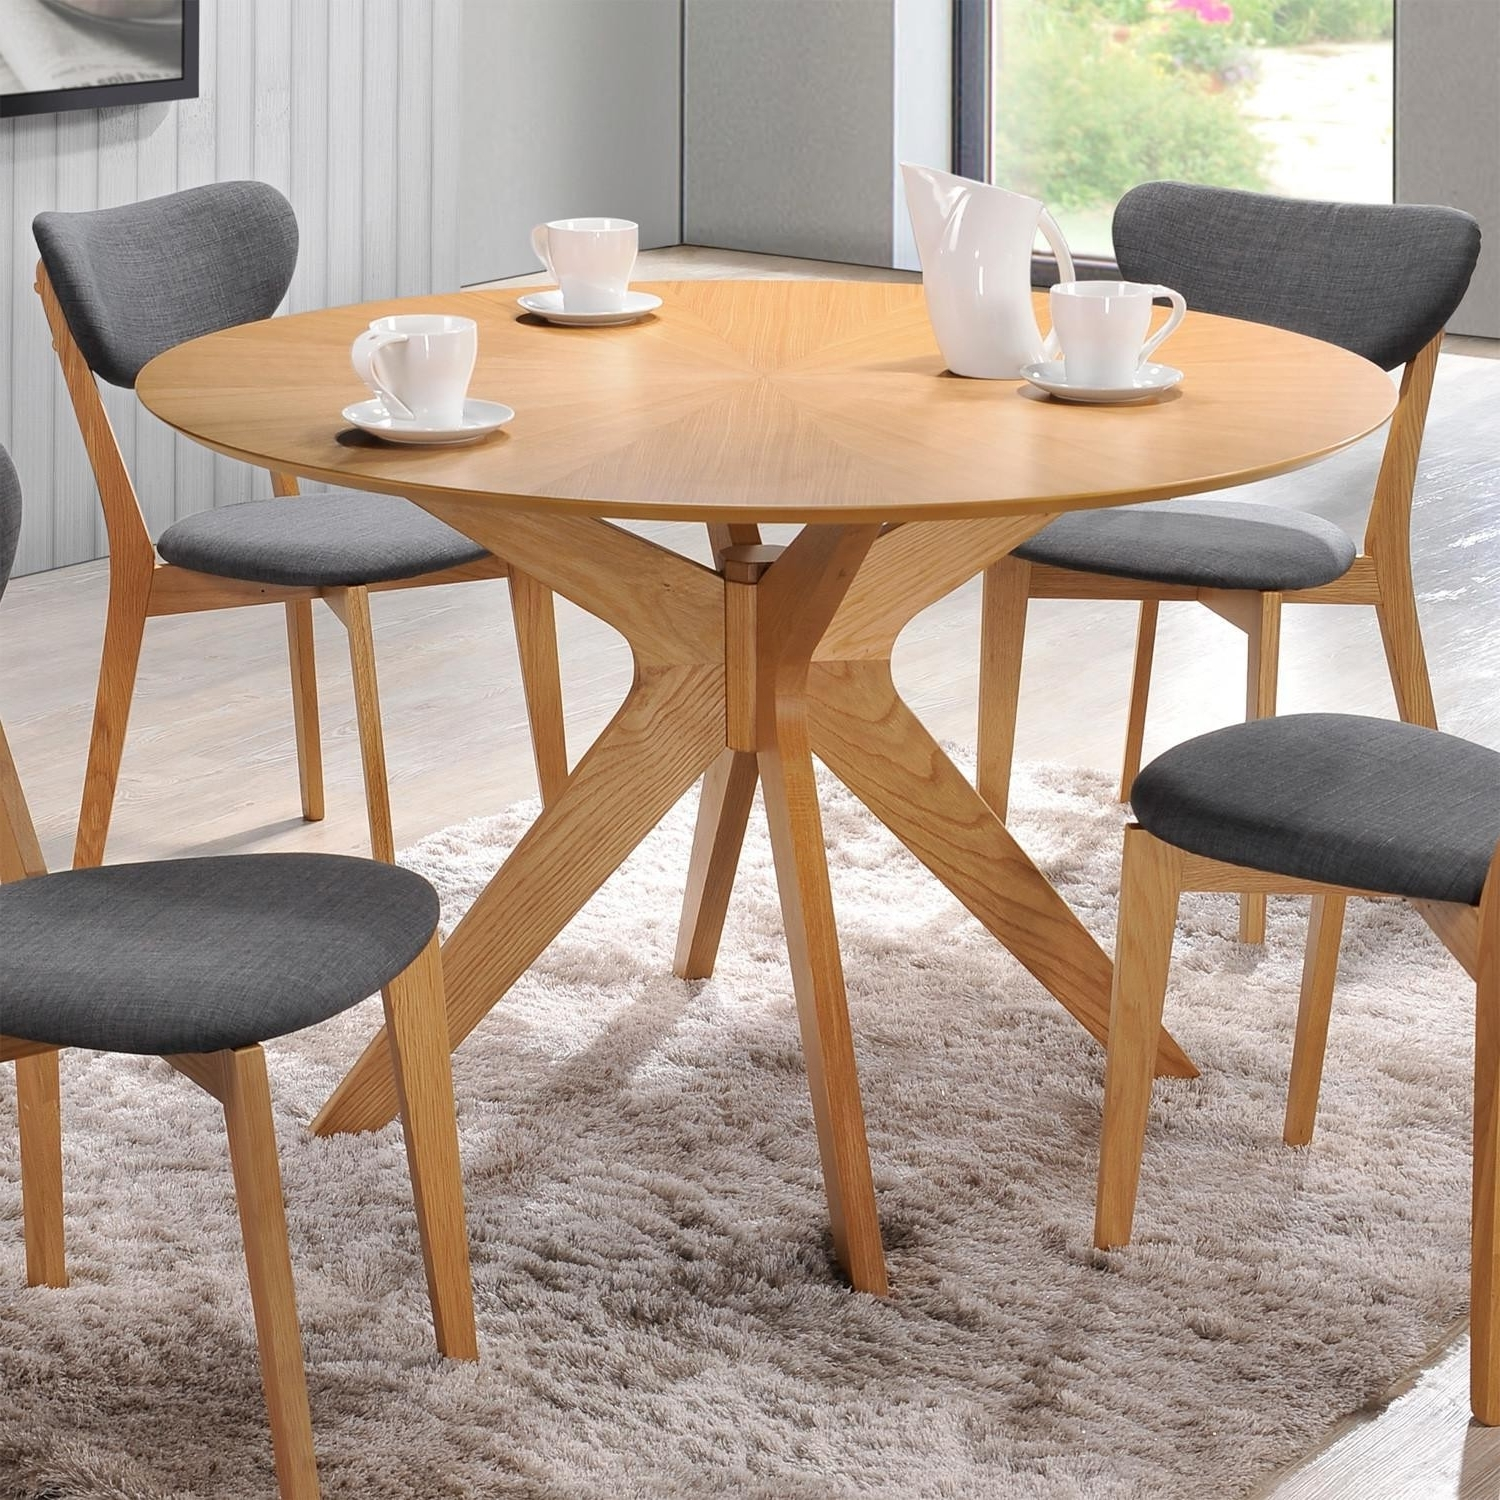 Danish Style Dining Tables with Most Recently Released Scandinavian Dining Tables Awesome 32 Stunning Danish Dining Room